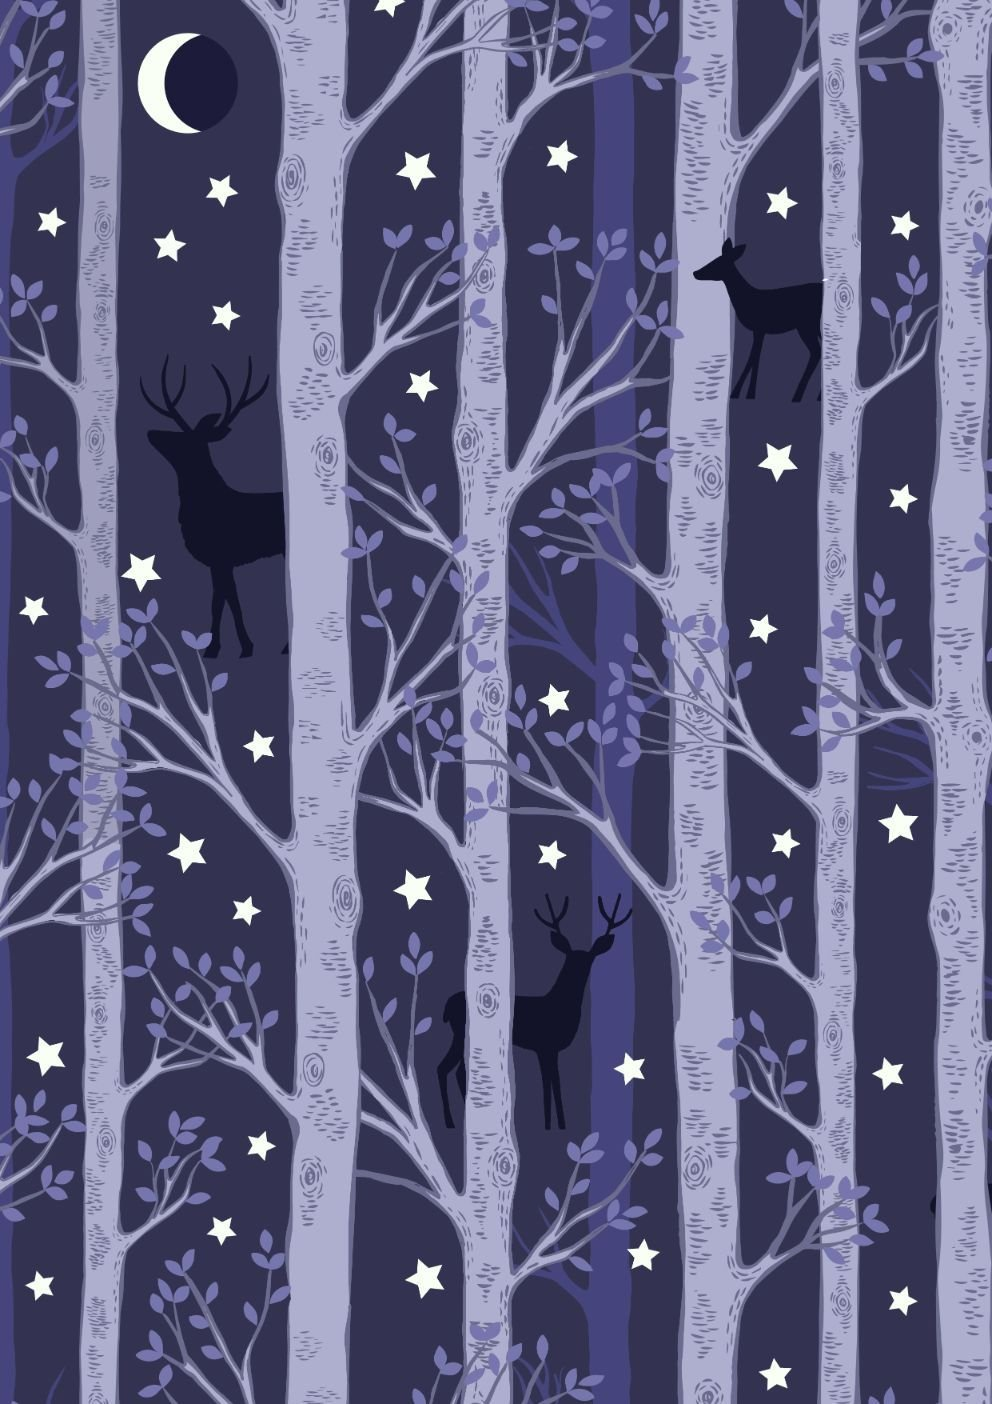 Nighttime in Bluebell Wood 478-3